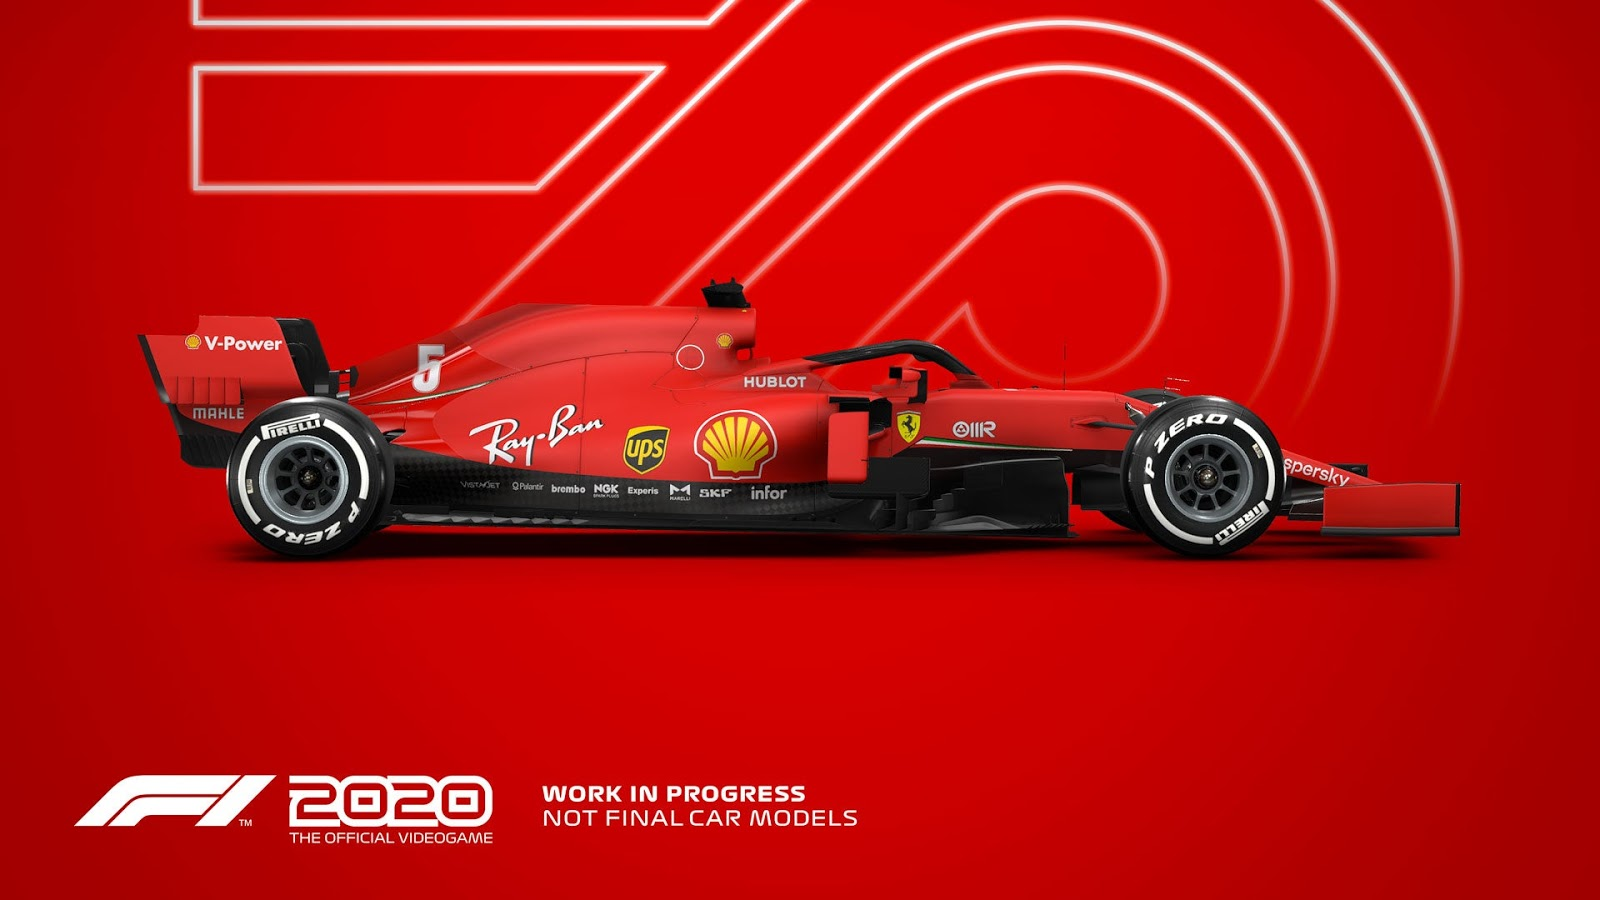 F1 2020 dal 10 luglio su PS4, Xbox, PC e Stadia | Video